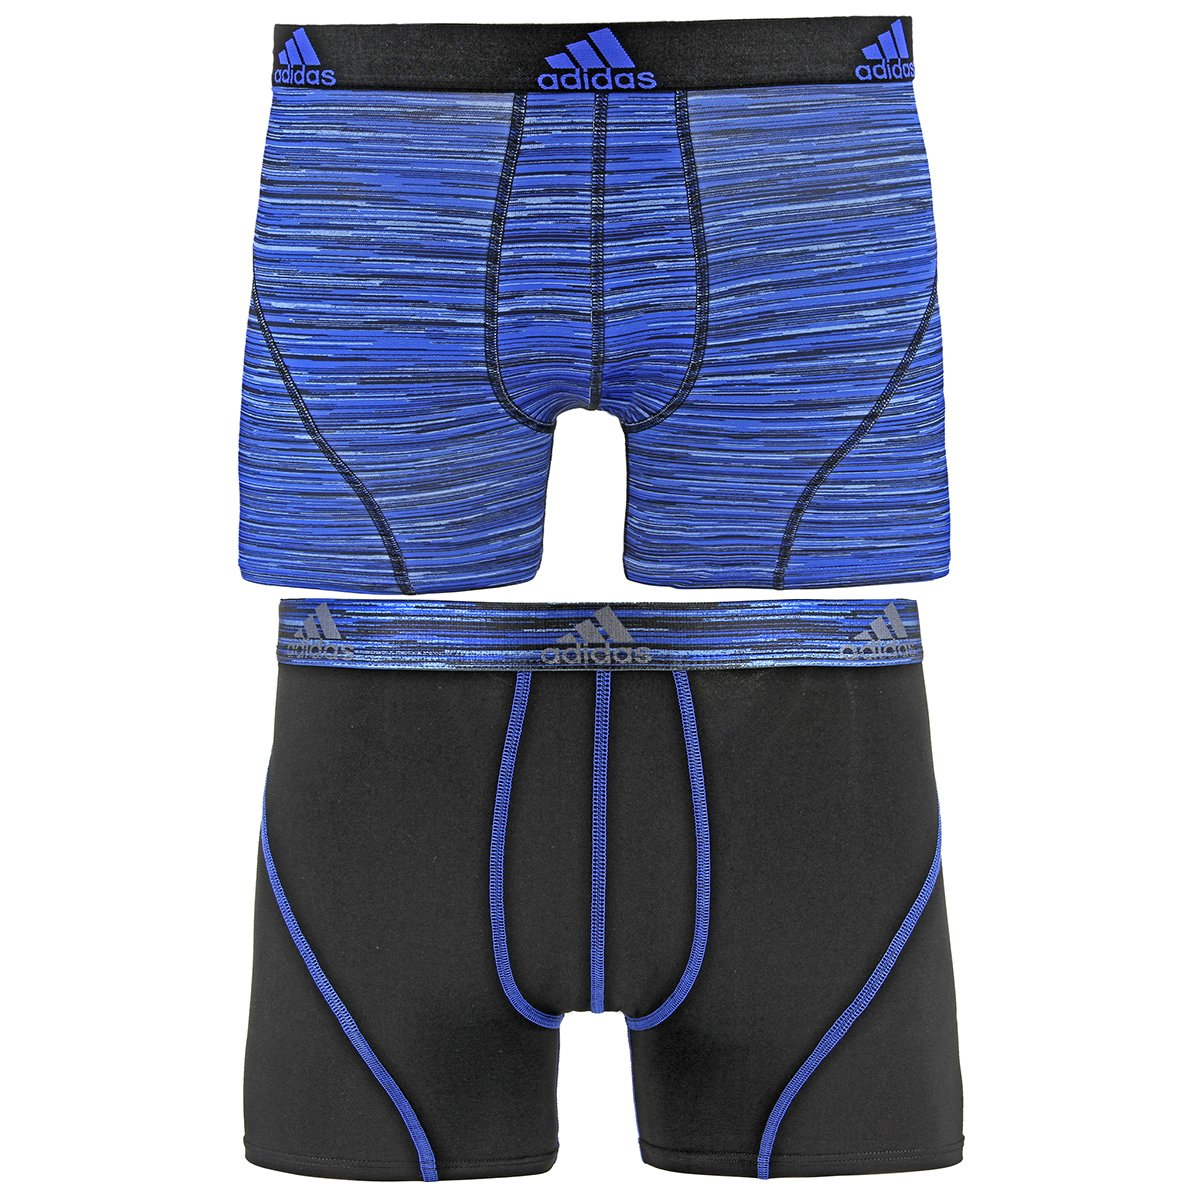 a7e9c97e1491 Amazon.com  adidas Men s Sport Performance Climalite Trunk Underwear  (2-Pack)  Sports   Outdoors